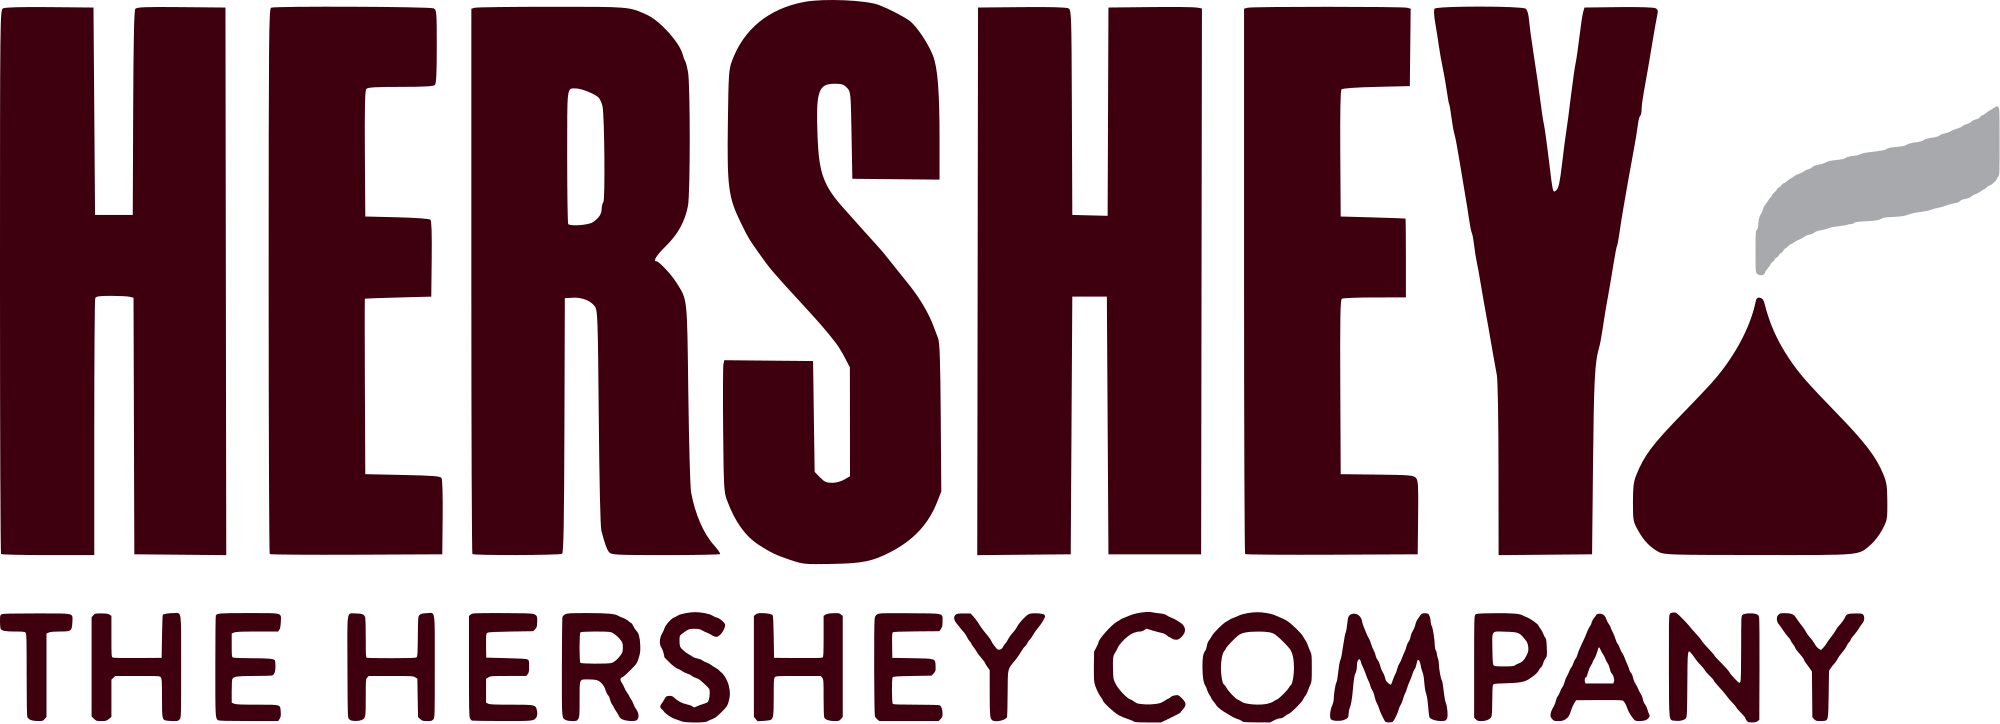 hershey - The Lancaster Science Factory